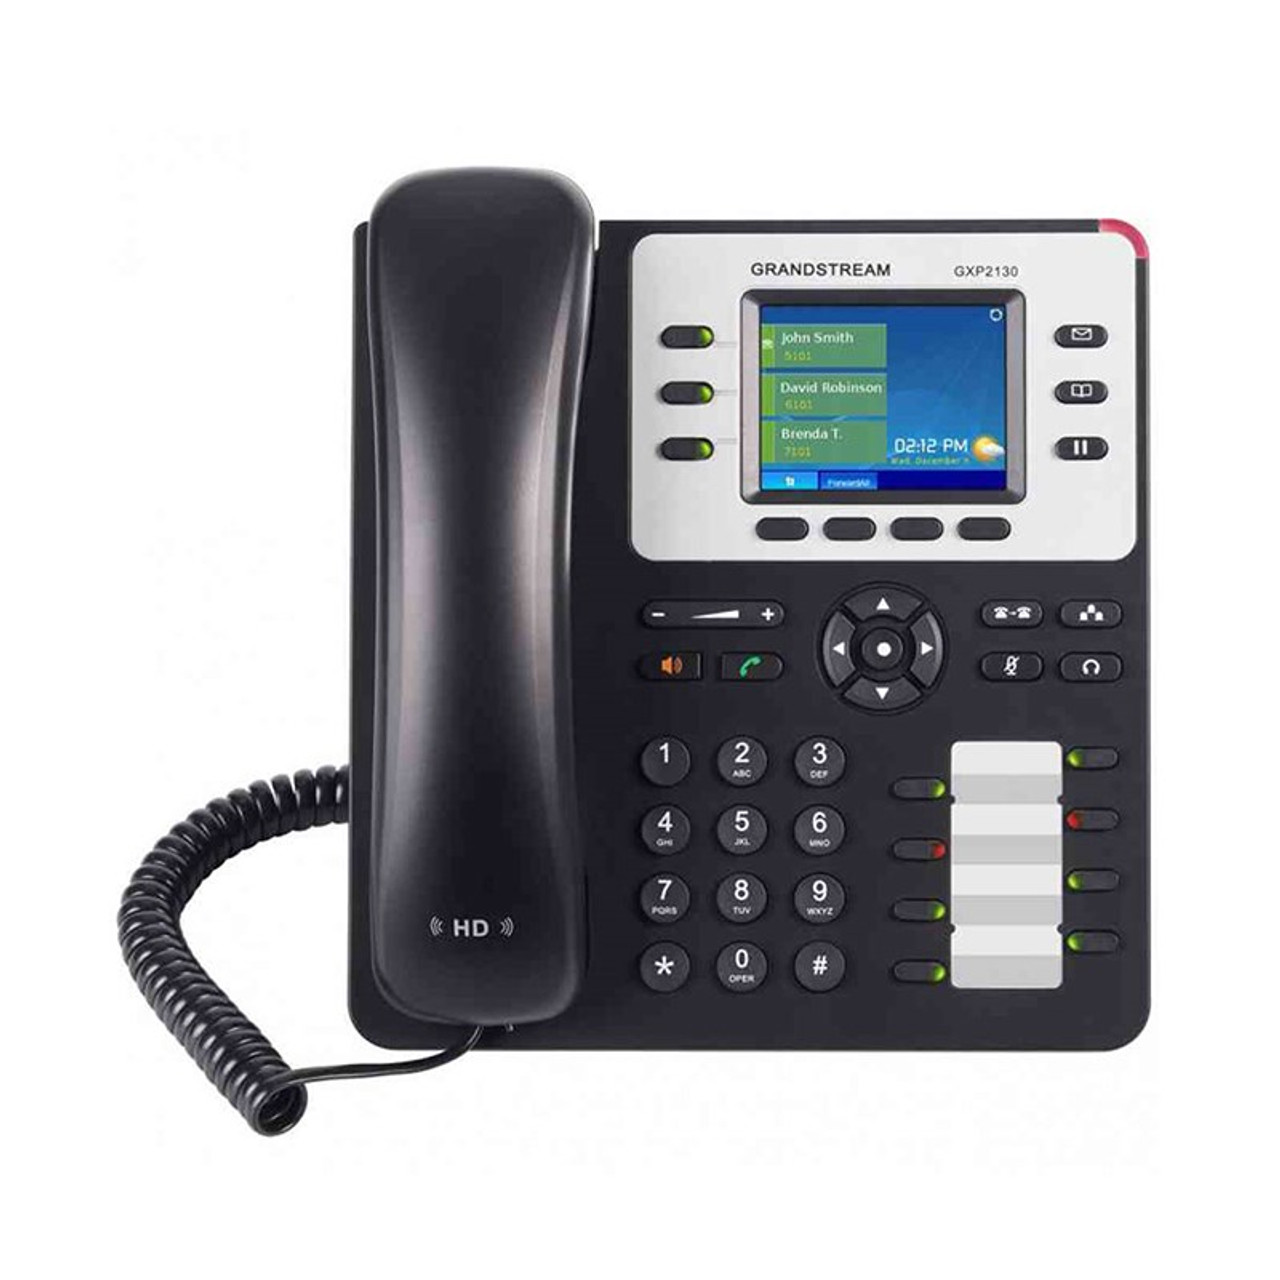 Image for Grandstream GXP2130 HD PoE IP Phone CX Computer Superstore